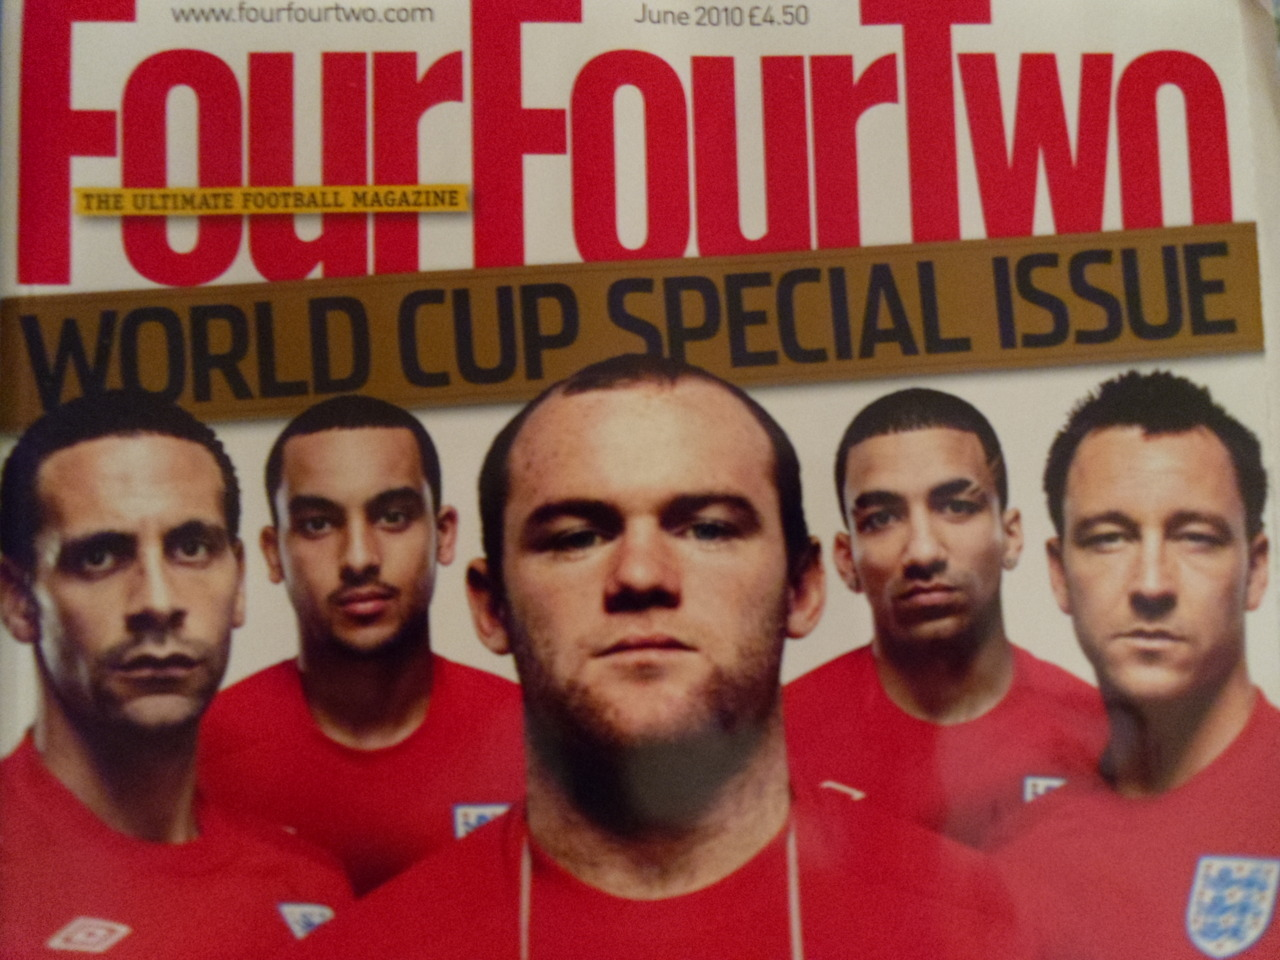 Four Four Two - World Cup 2010 Special Issue